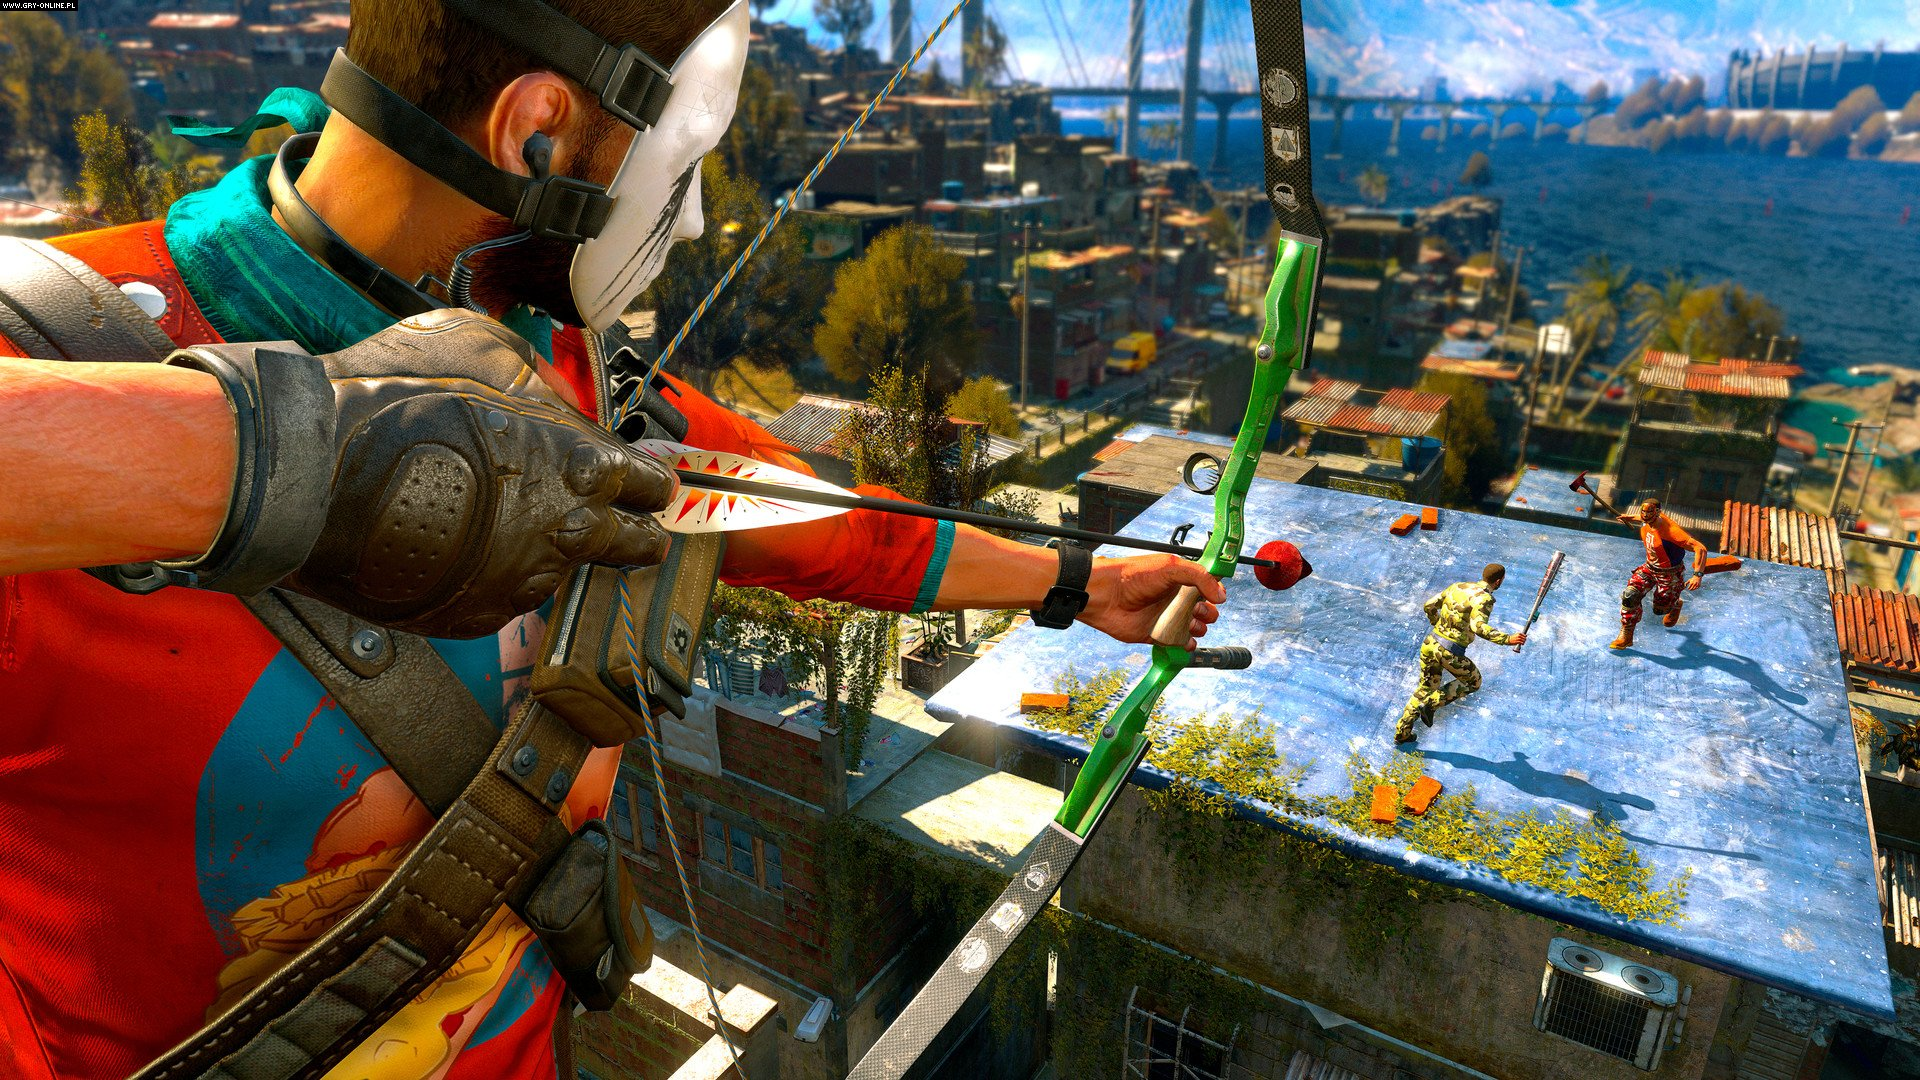 Dying Light: Bad Blood PC, PS4, XONE Gry Screen 3/5, Techland